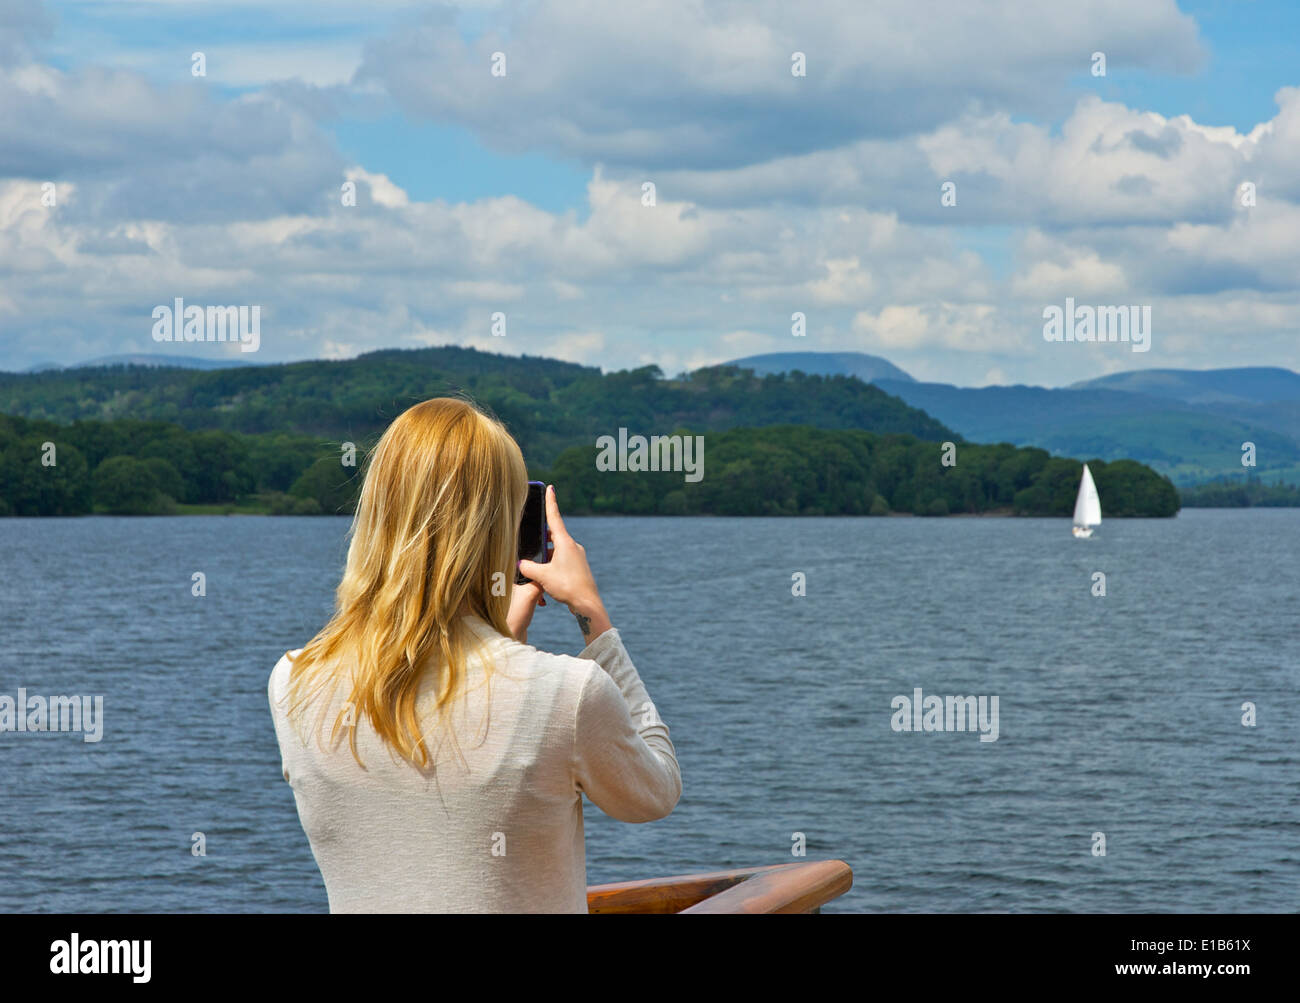 Young woman on passenger 'steamer', taking a photograph on smartphone, Lake Windermere, Lake District, Cumbria, England UK - Stock Image